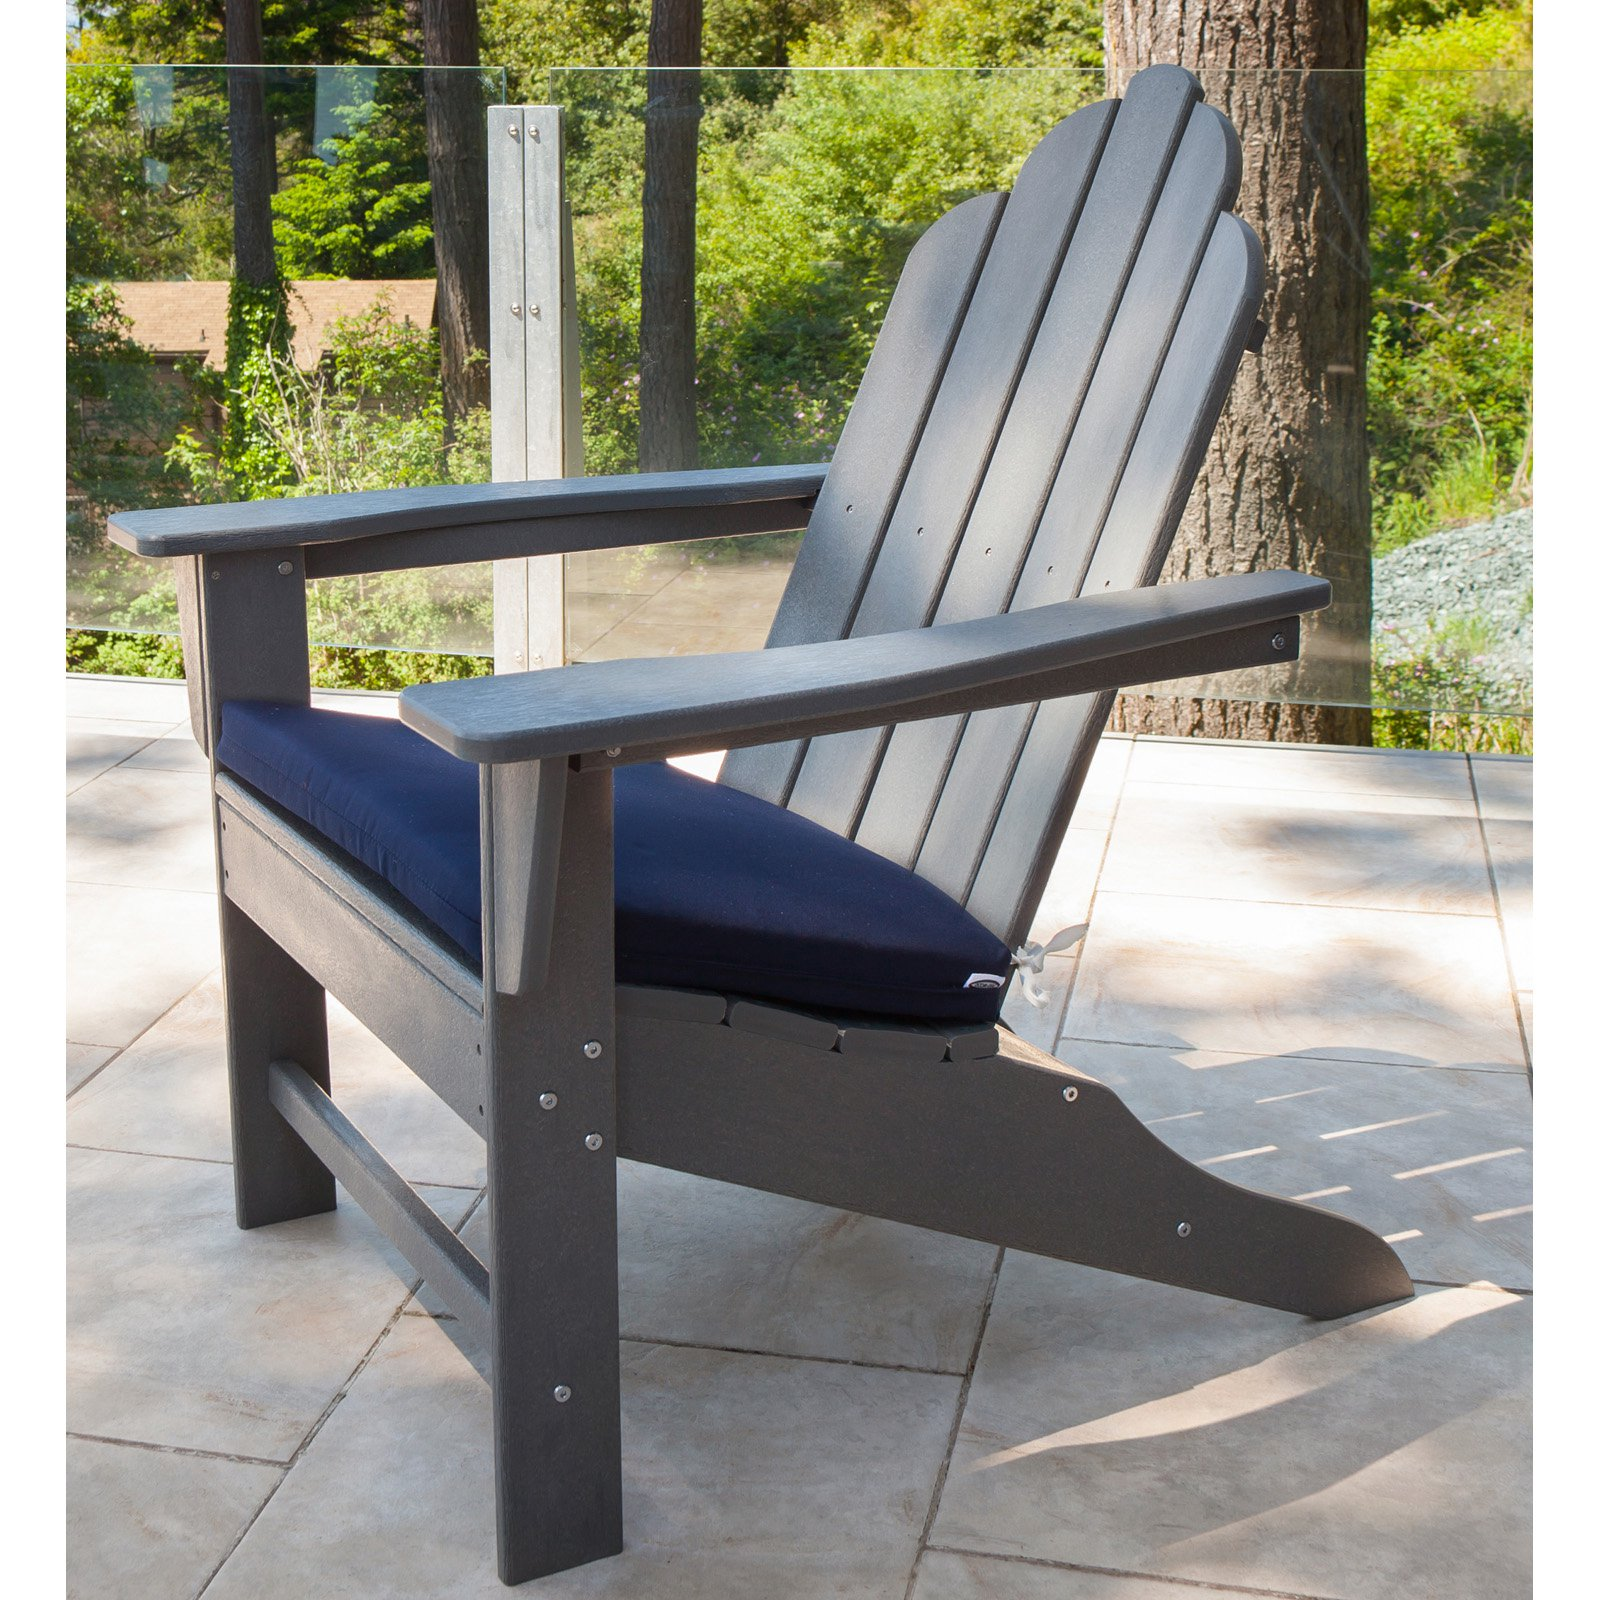 Polywood Long Island Recycled Plastic Adirondack Chair Blue Outdoor Furniture Adirondack Chairs Uk Outdoor Furniture Covers